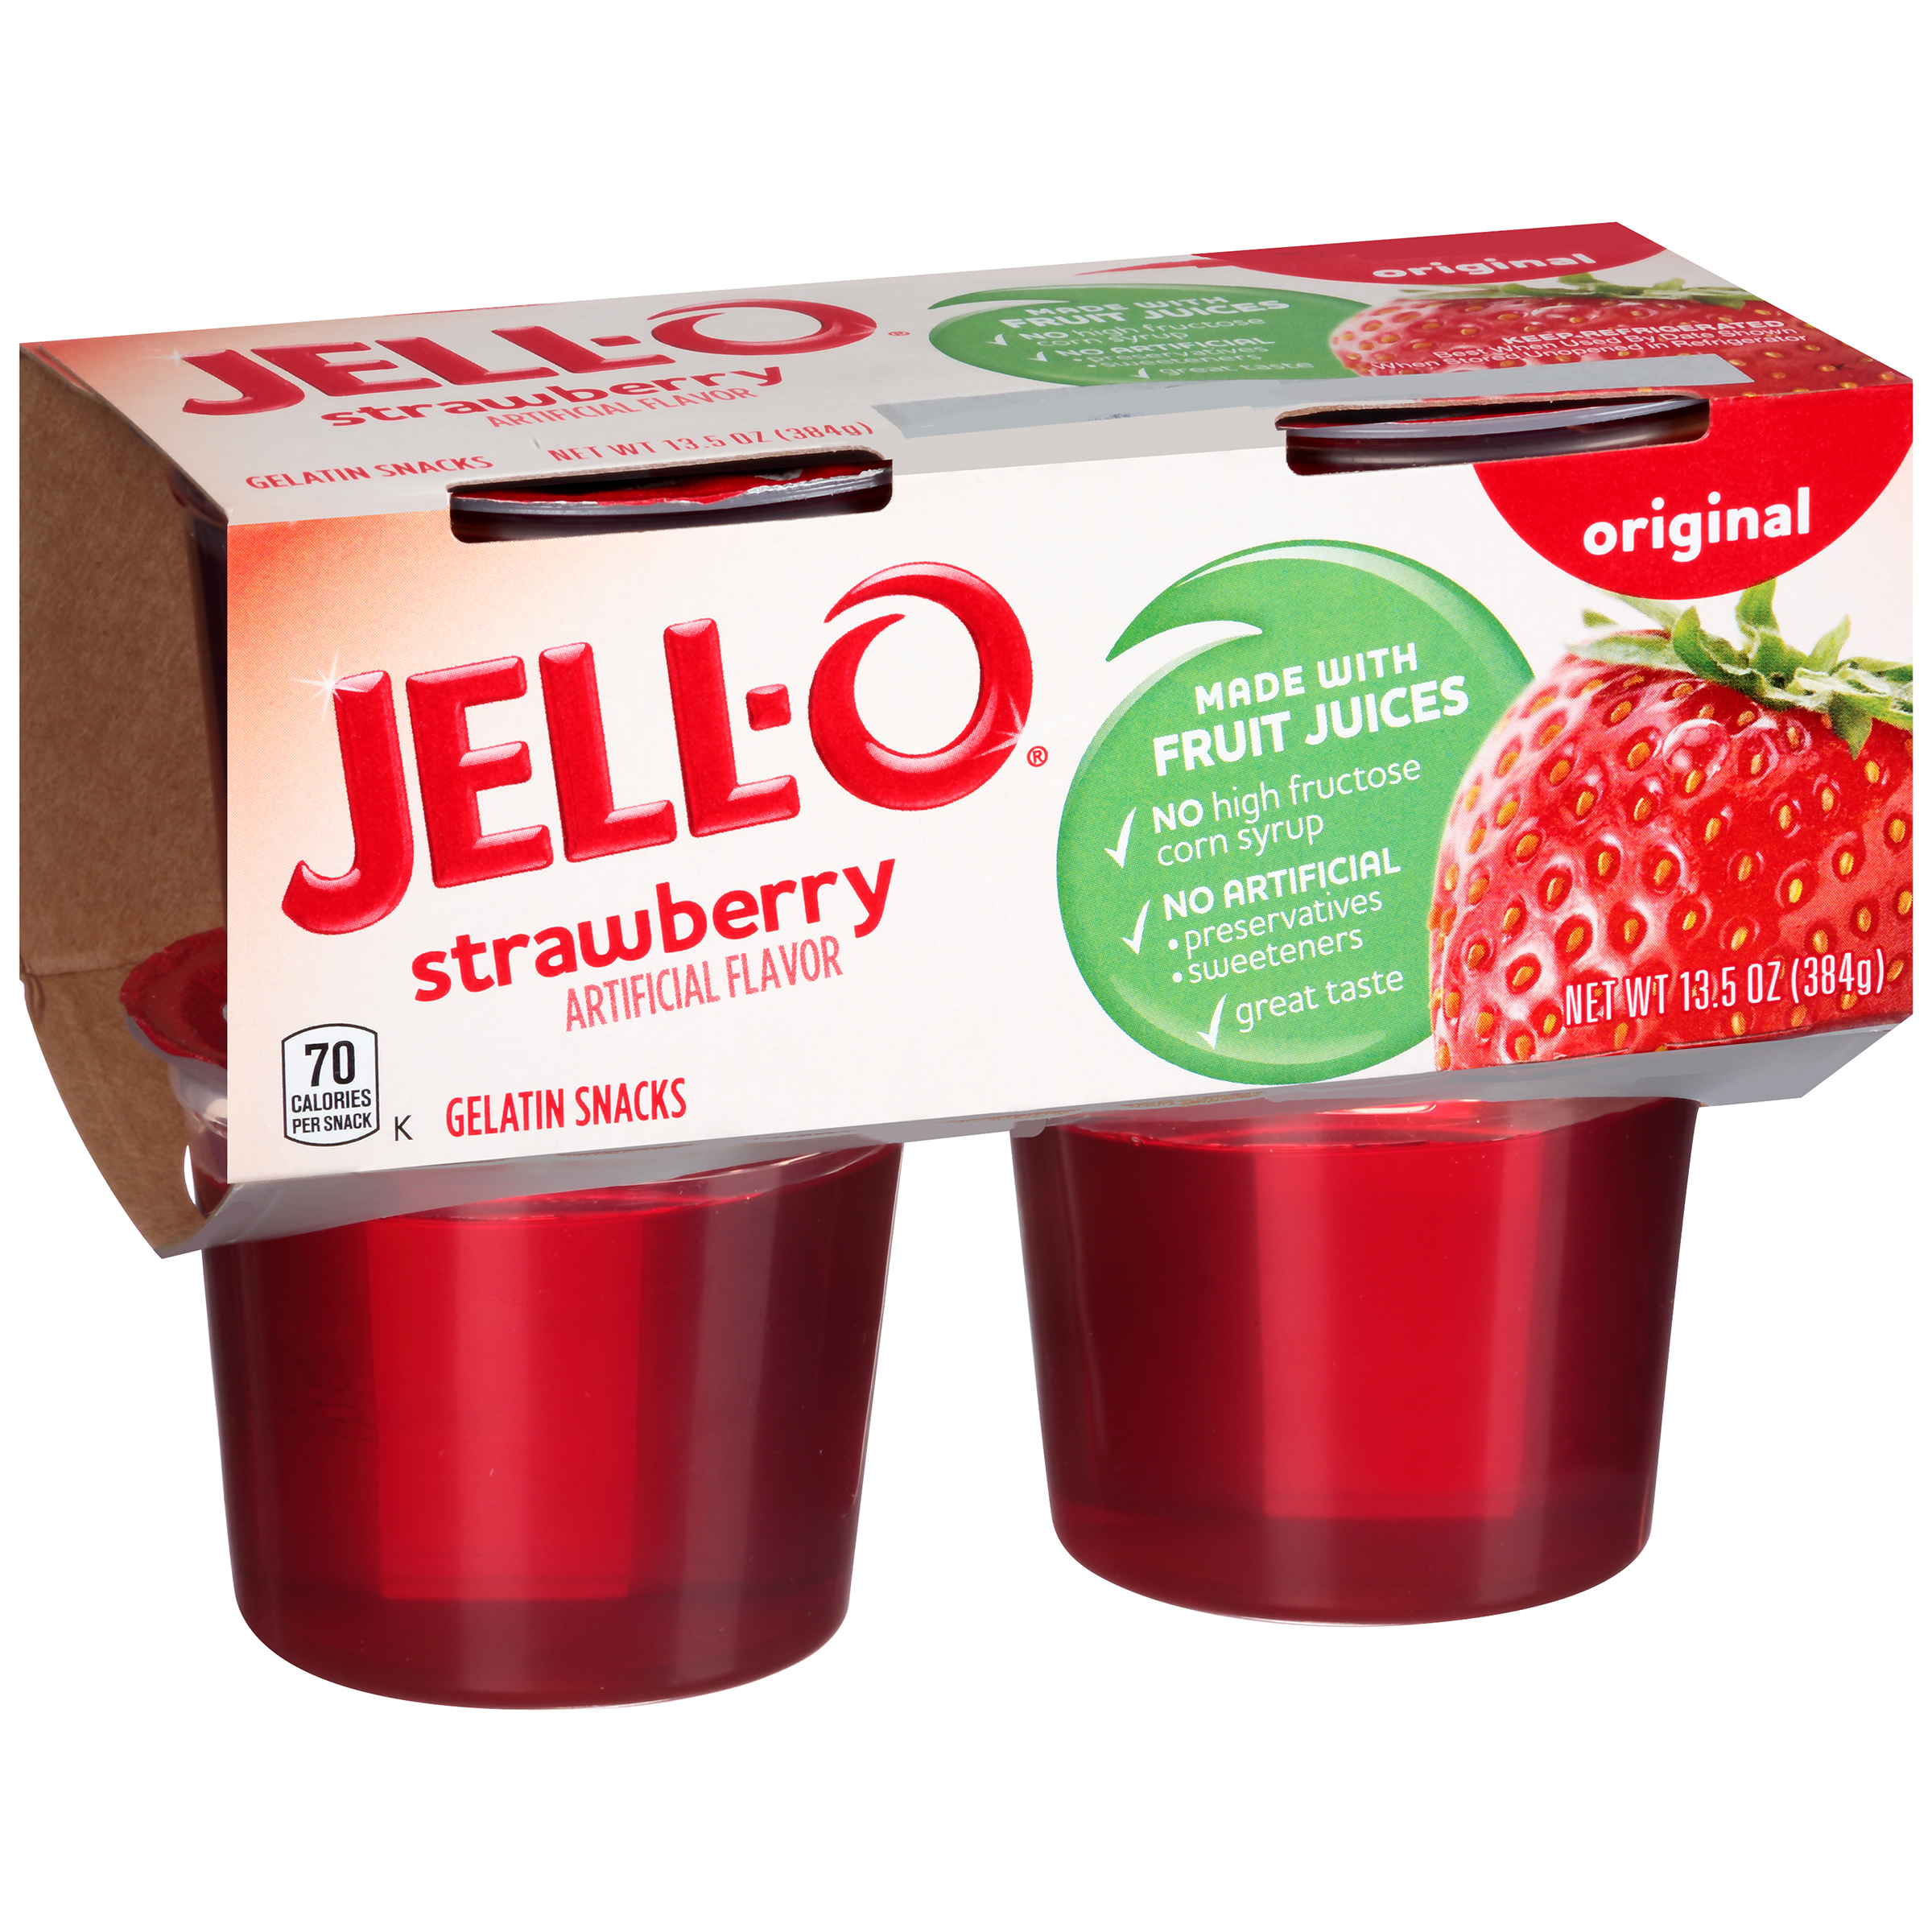 Jell-O Ready to Eat Strawberry Gelatin Snacks, 13.5 oz Sleeve (4 Cups)